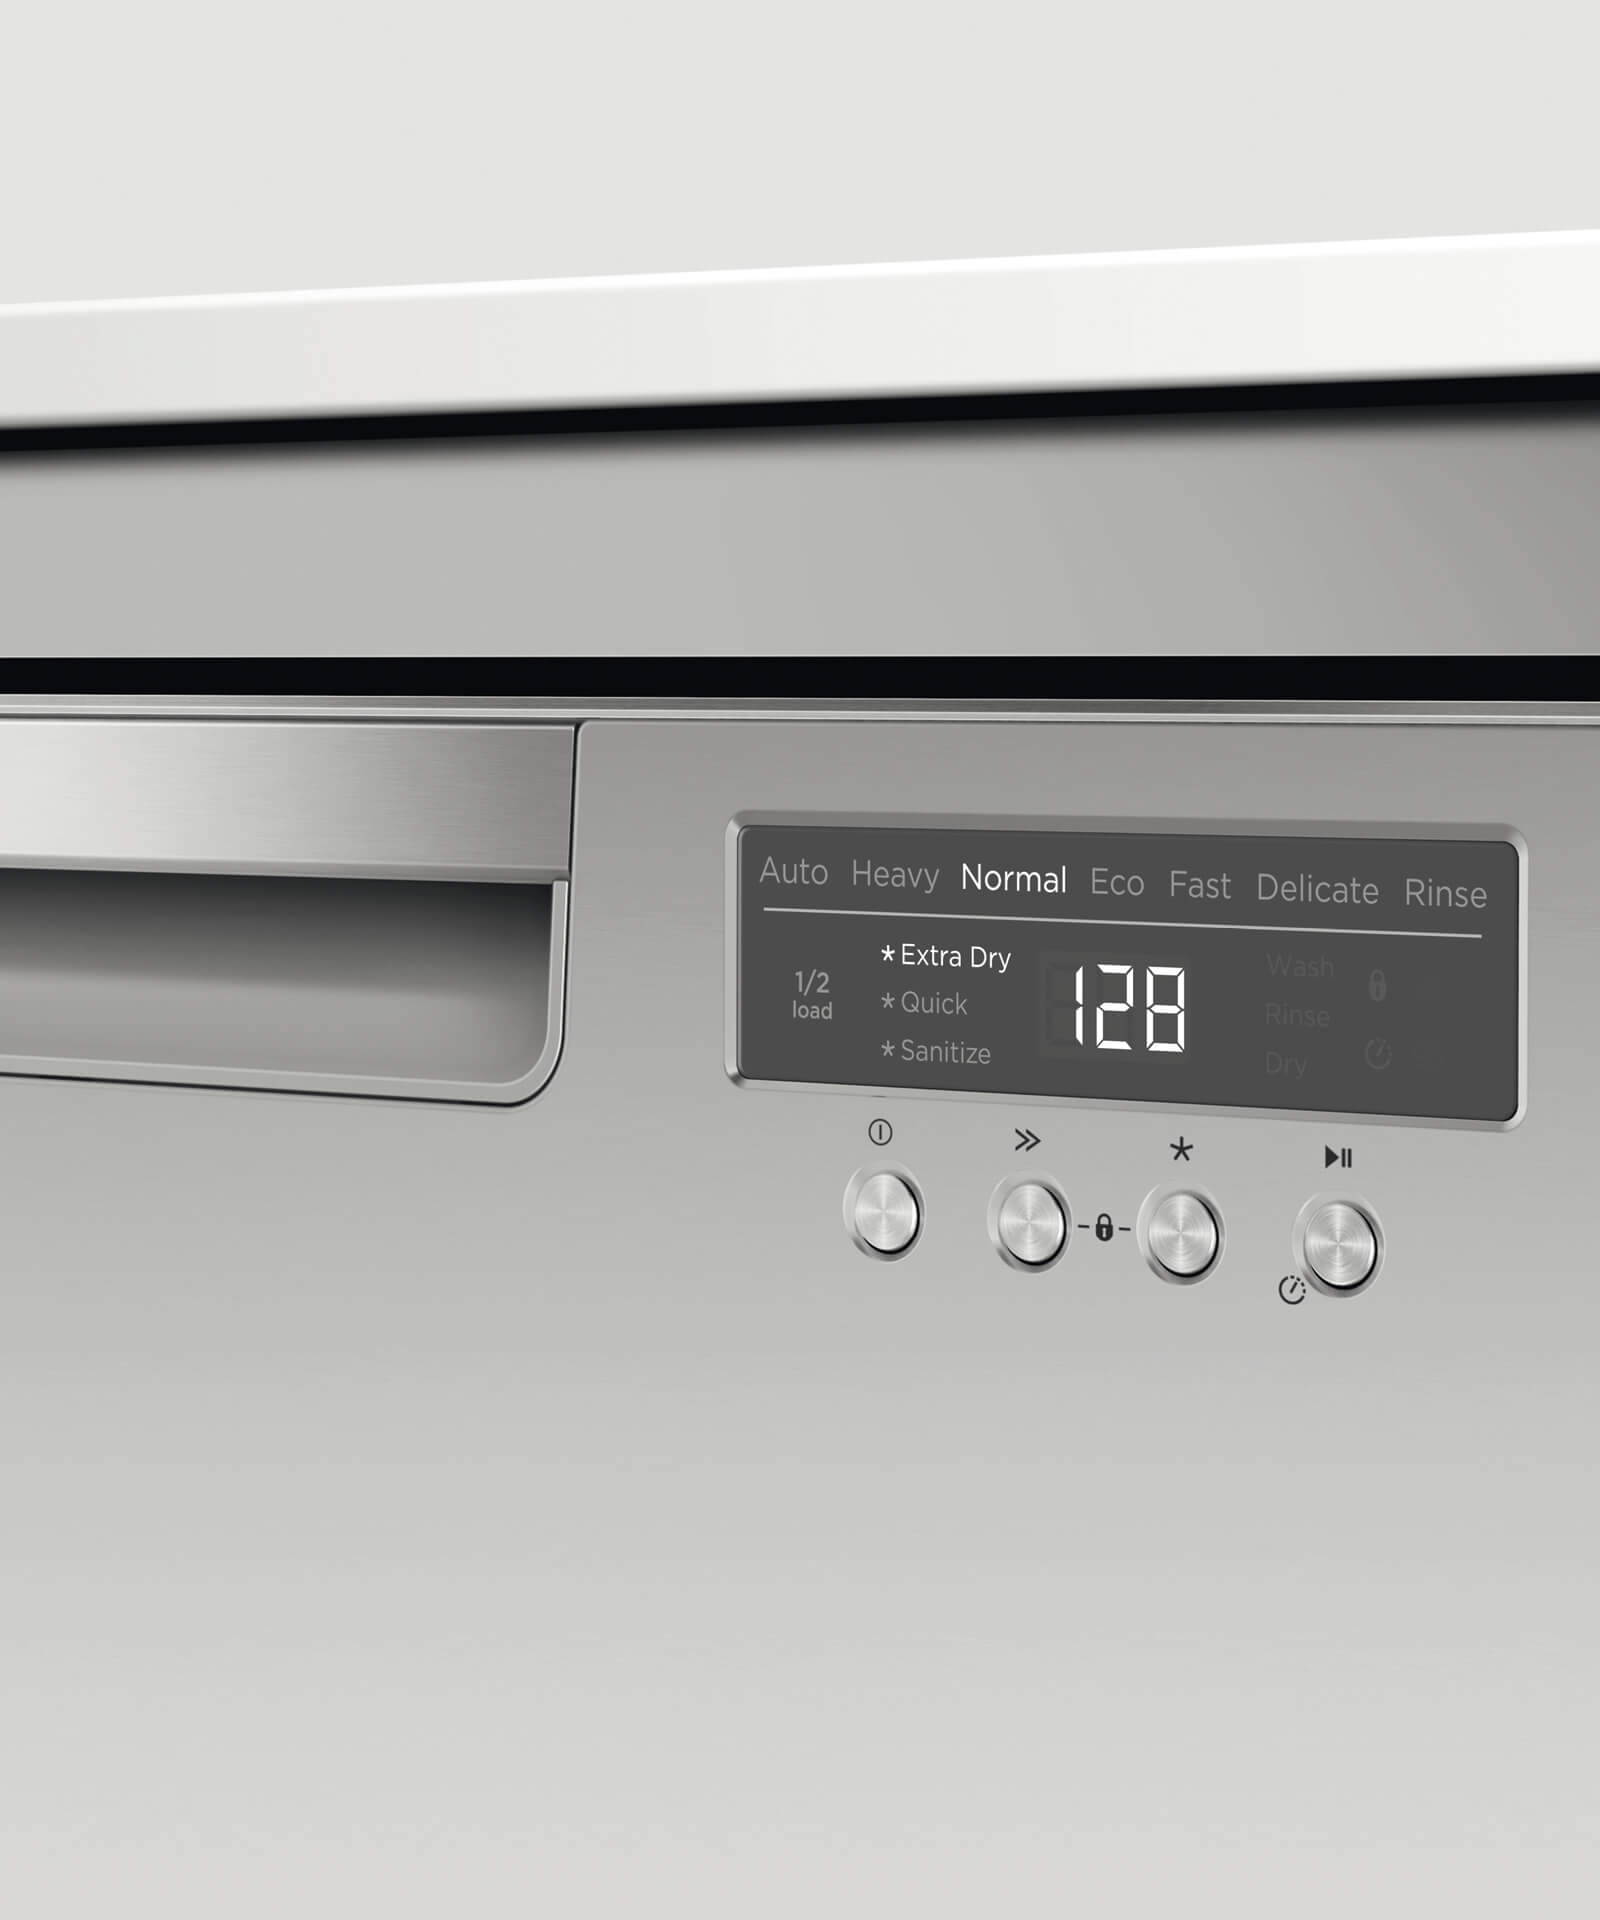 elba dishwasher service manual dw60